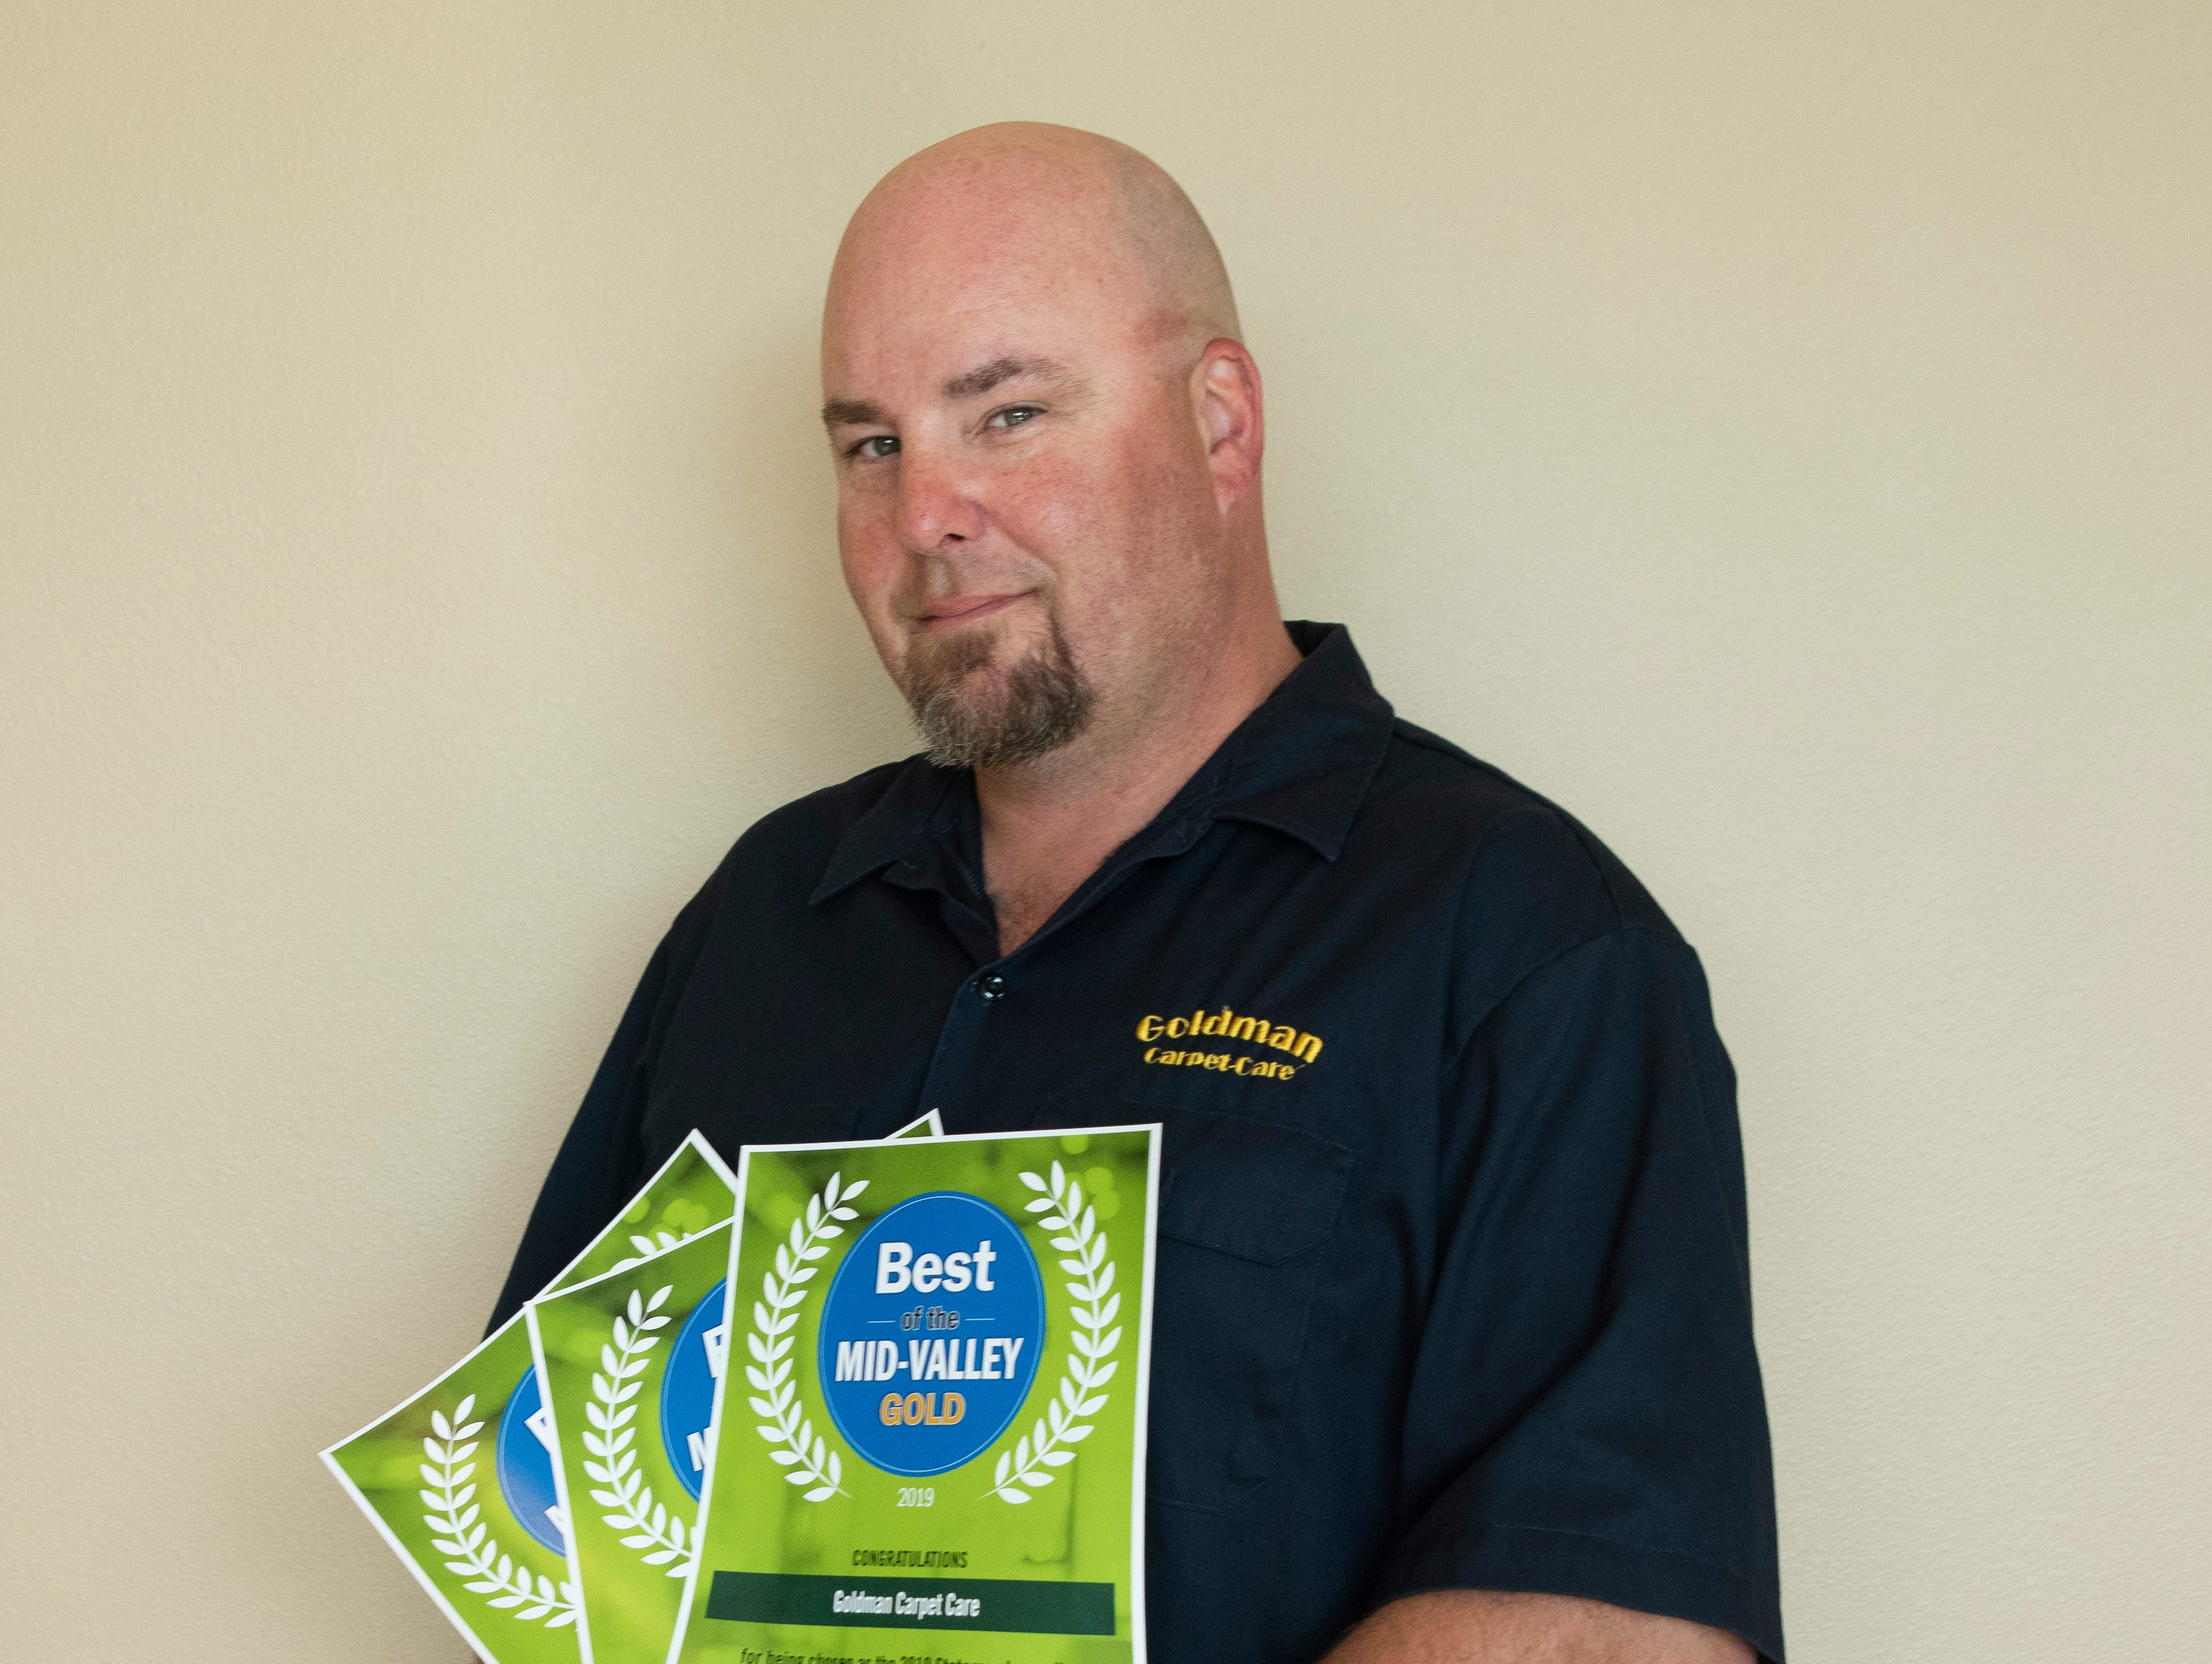 Goldman Carpet Care won Gold for Best Carpet Cleaning Service, silver for Disaster Restoration and silver for Carpet Retailer/Installer in the 2019 Best of the Mid-Valley.